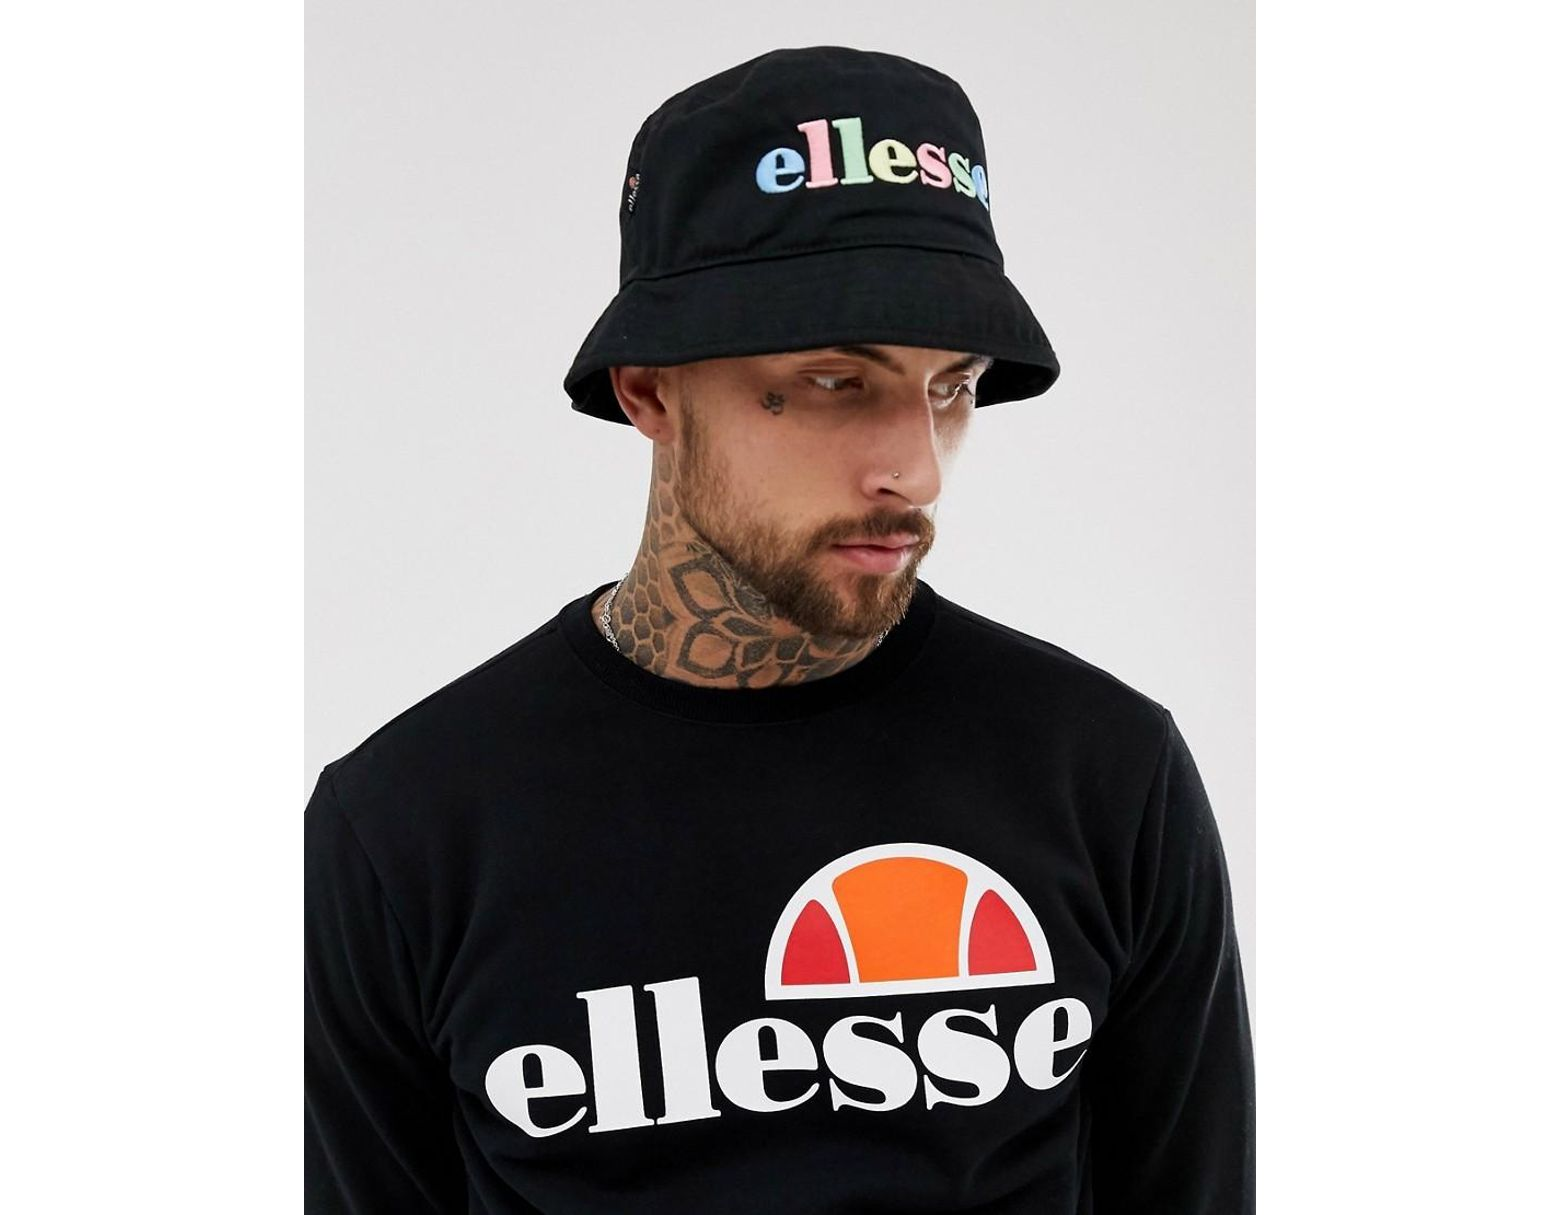 ee337e2a9e Ellesse Lomba Bucket Hat With Embroidered Rainbow Logo In Black in ...